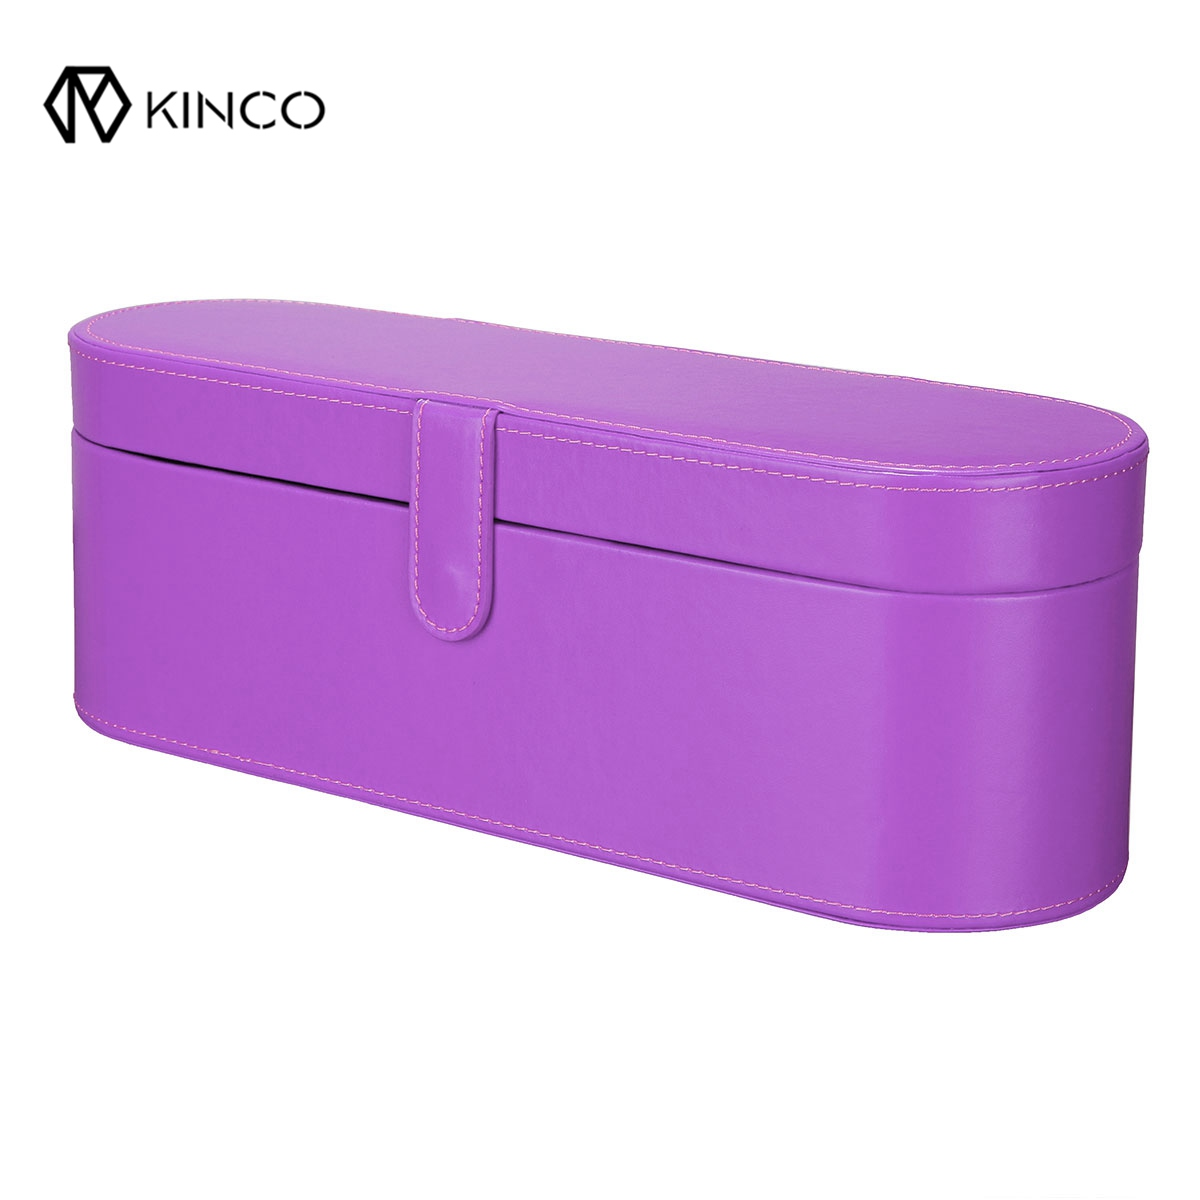 KINCO 1 pcs Hair Dryer Hard Carry Case Cover Storage Bag Portable Storage Pouch Sleeve Gift Box For Dyson Supersonic HD01 japanese pouch small hand carry green canvas heat preservation lunch box bag for men and women shopping mama bag